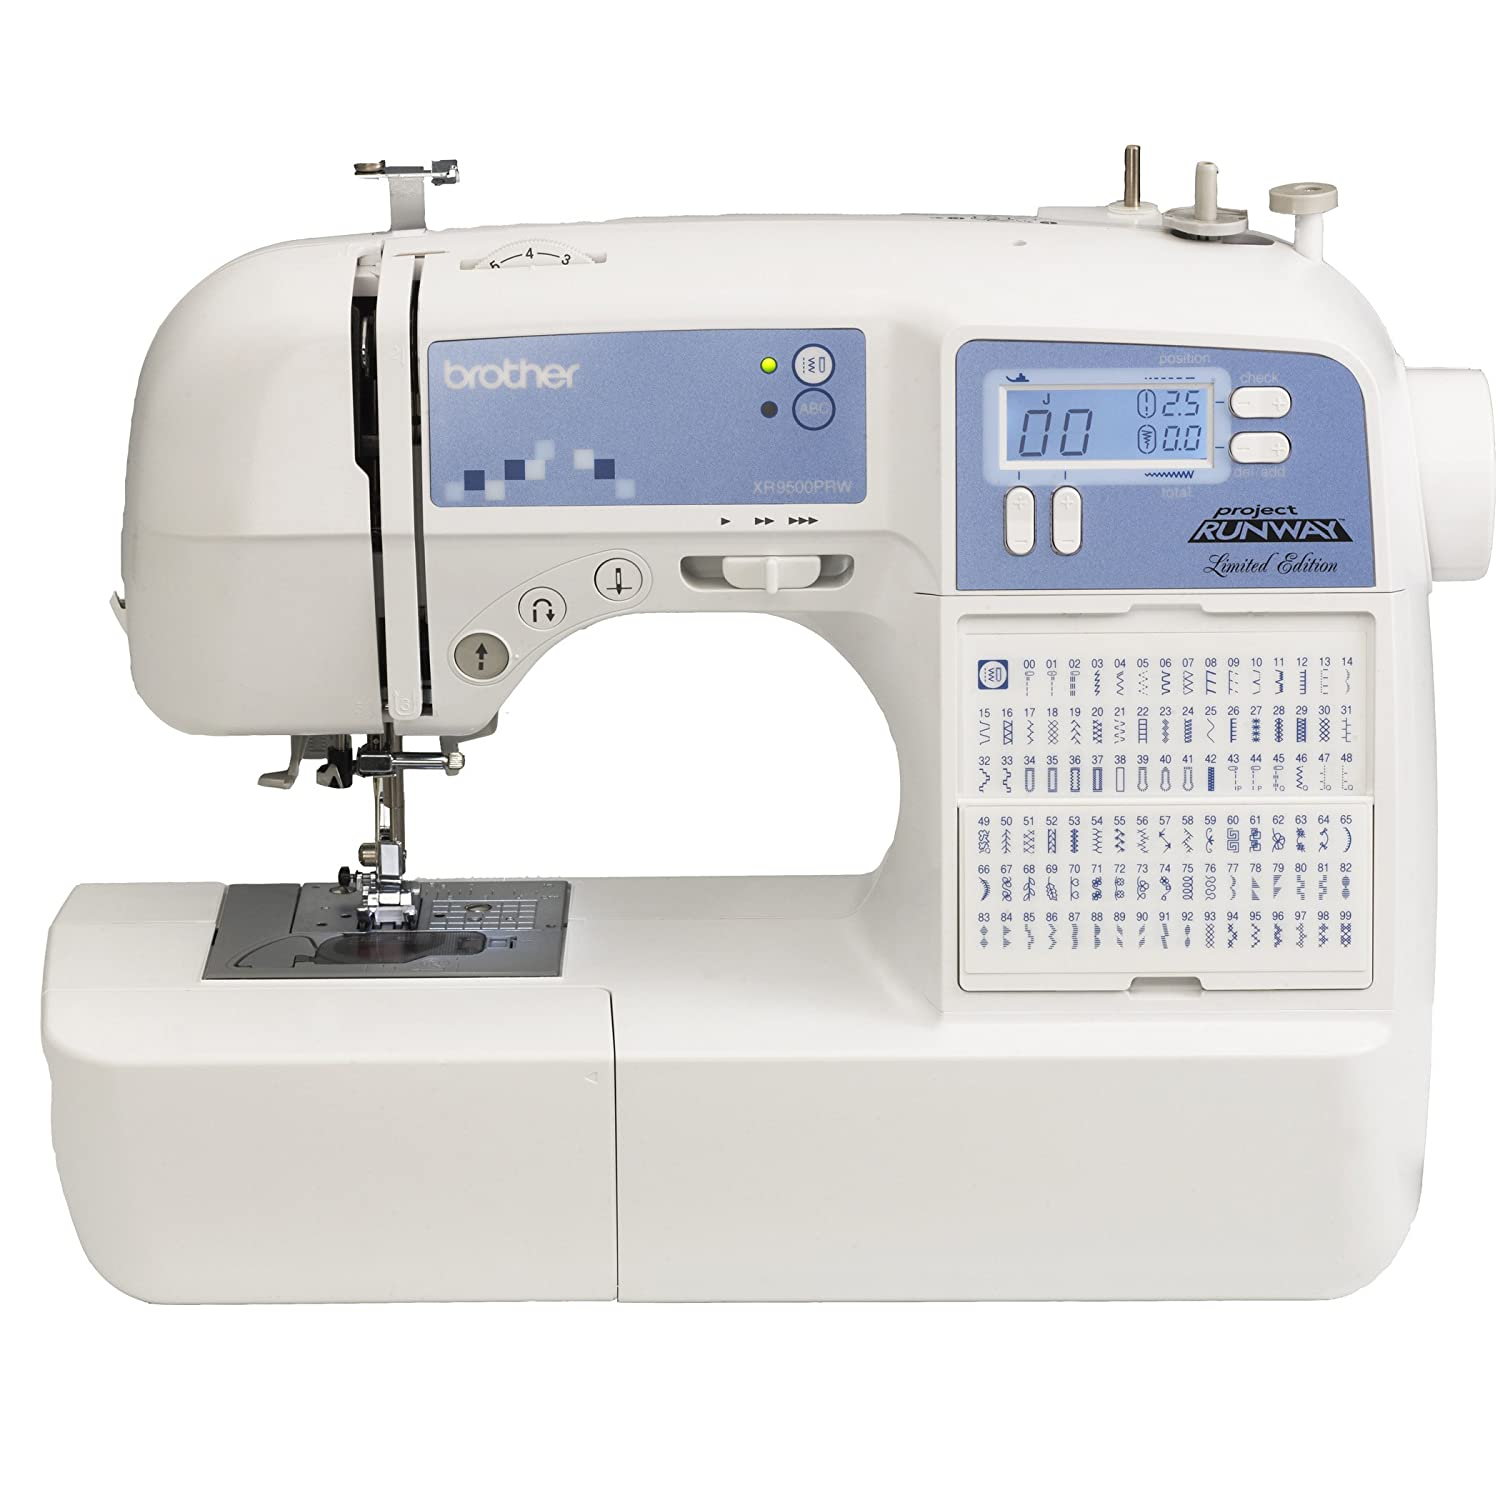 Best Sewing Machine For Quilting 2020 12 Best Sewing Machines for Quilting 2020 2021 Reviews